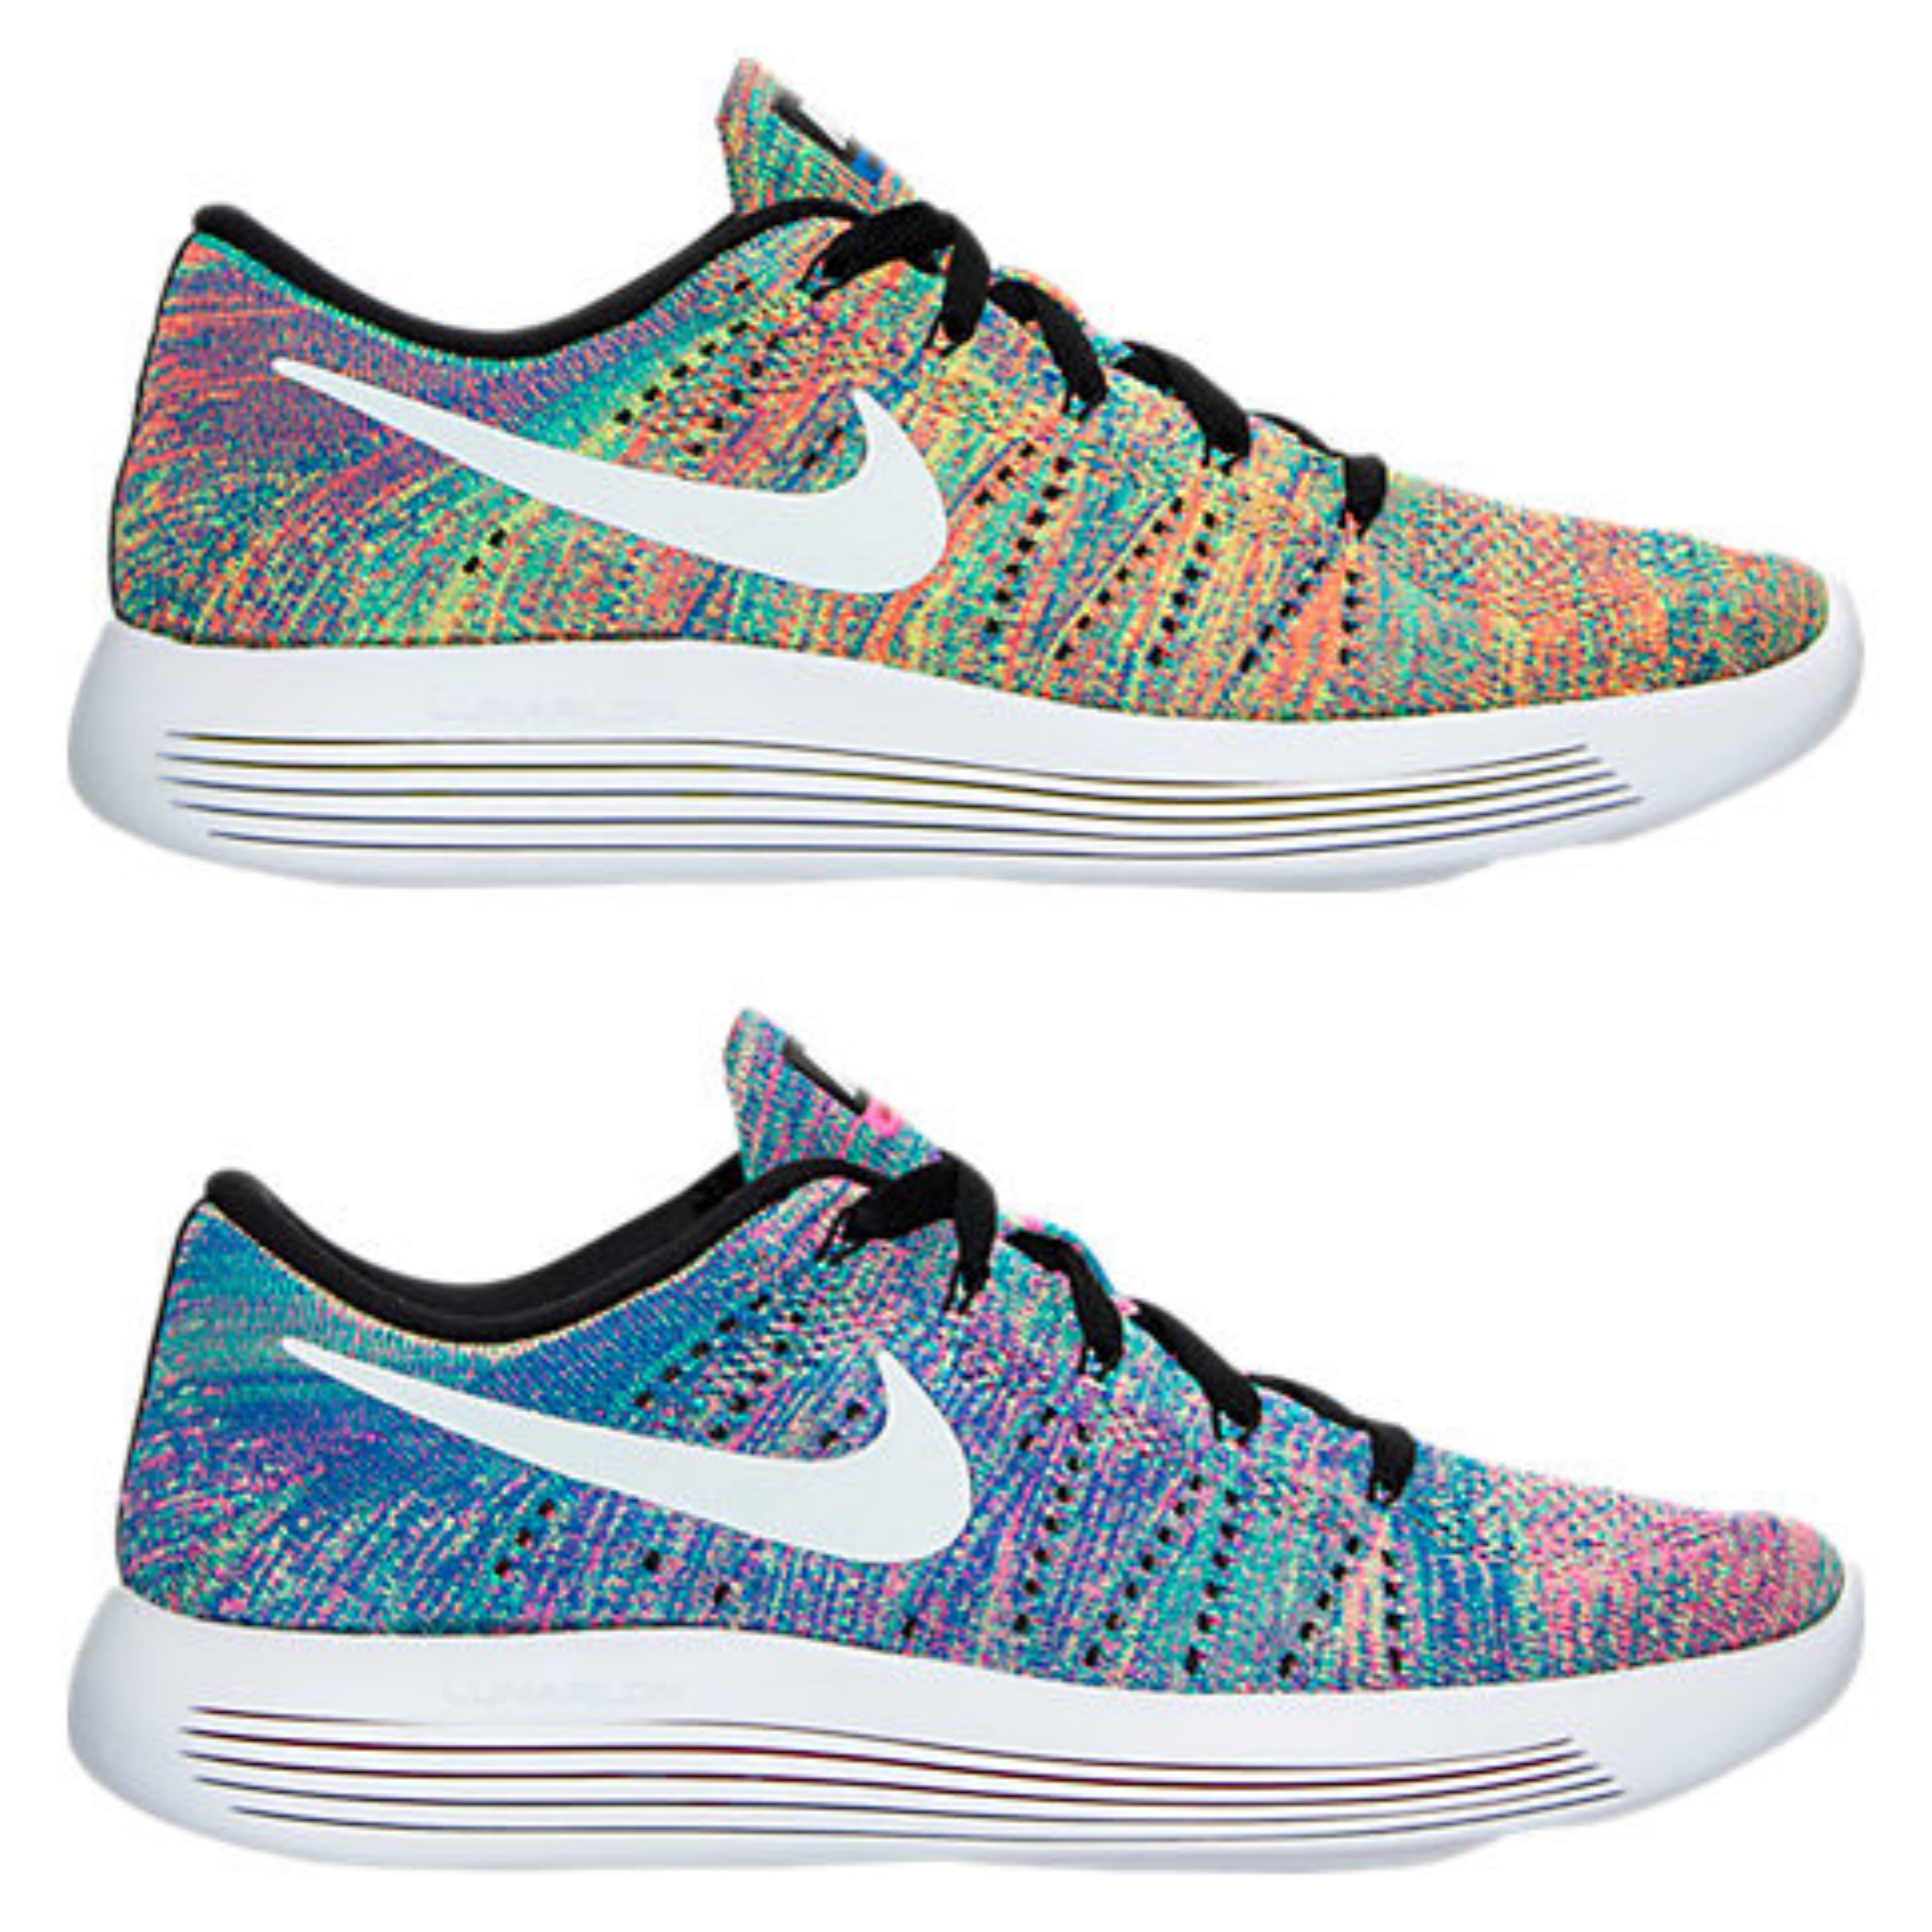 the best attitude 7c6c1 3a405 Multicolor Returns on These Nike Lunarepic Low Flyknit ...